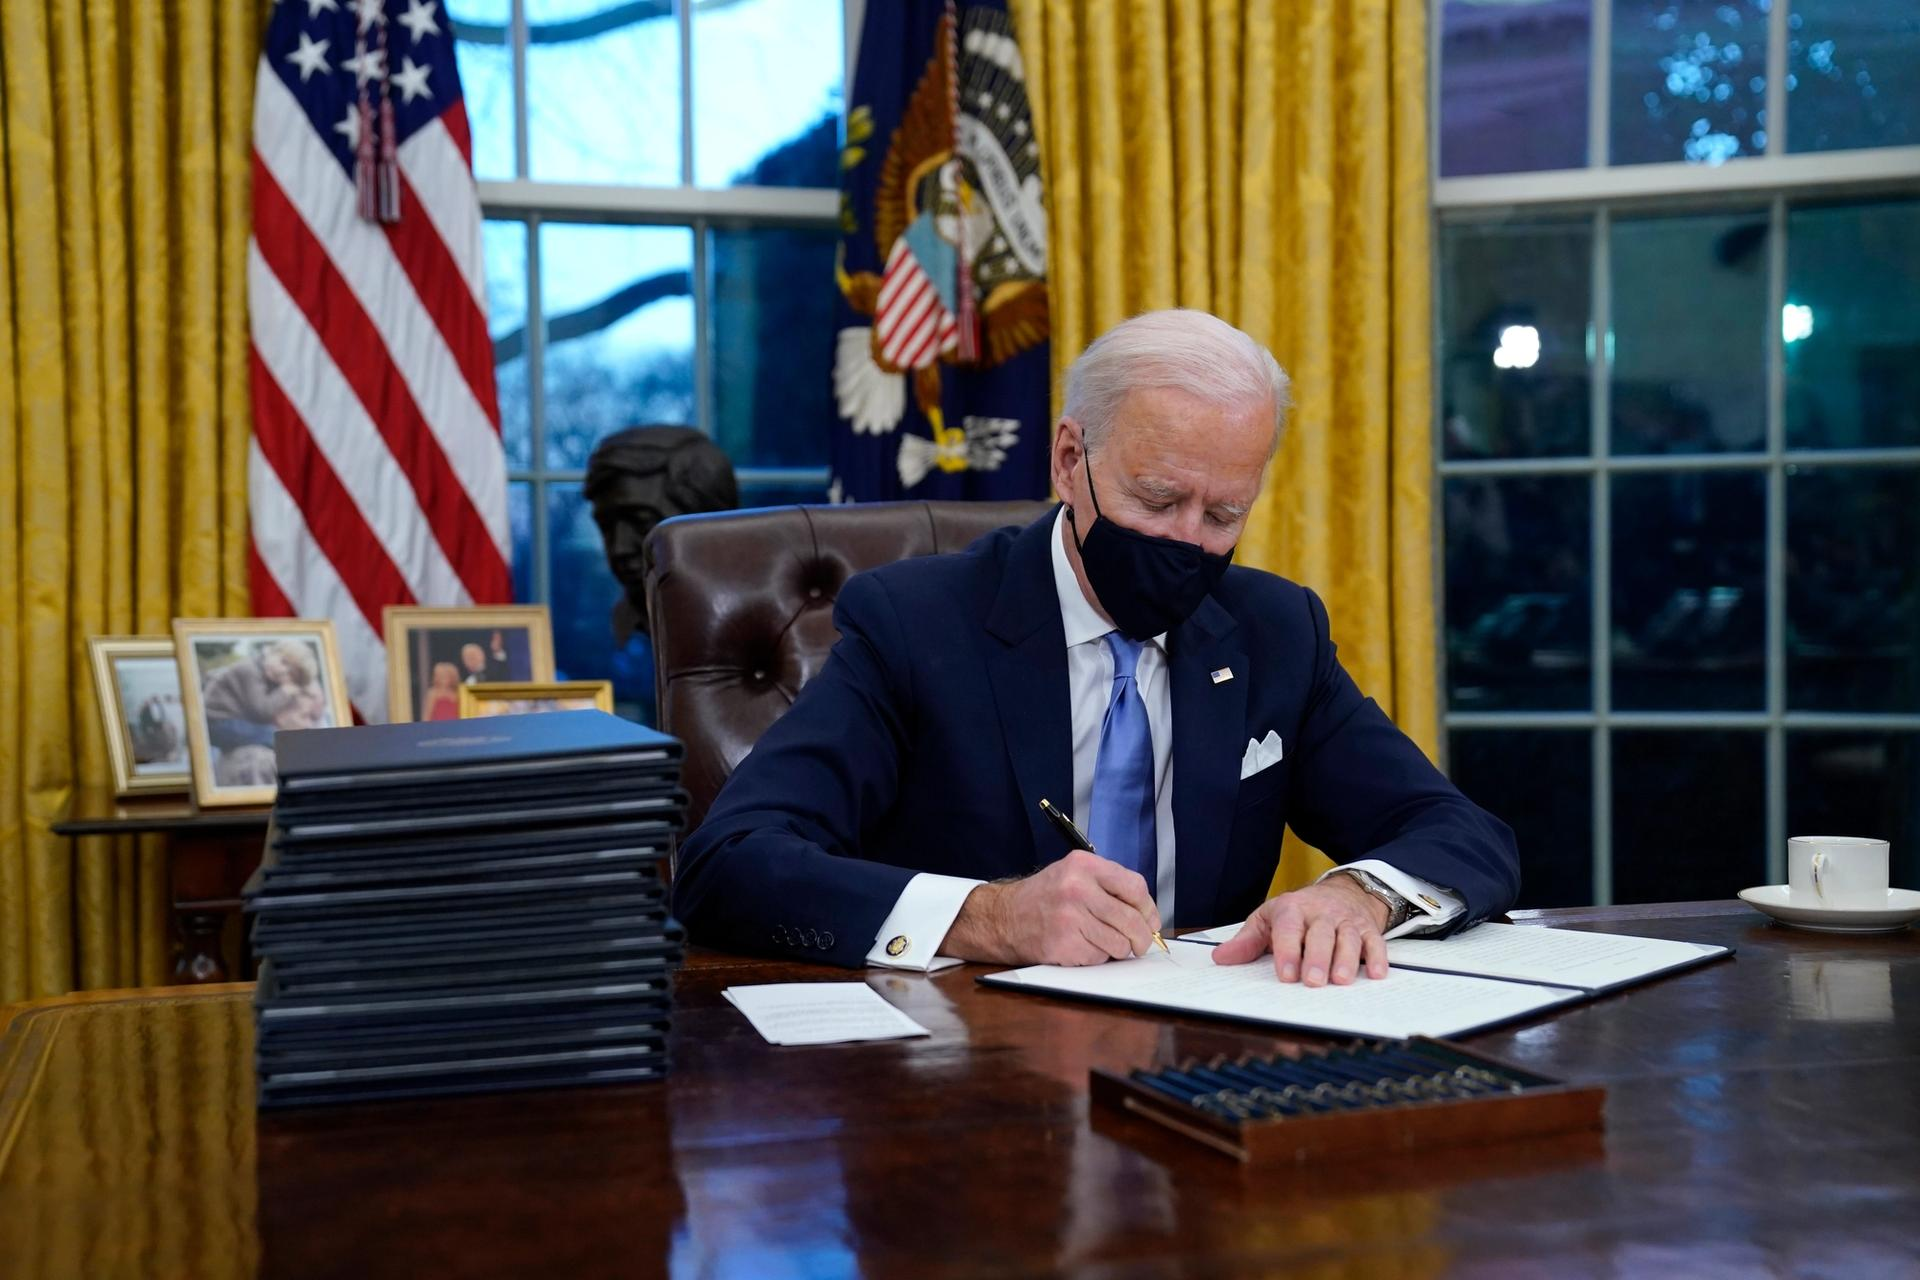 President Joe Biden signs his first executive order in the Oval Office of the White House on 20 January AP Photo/Evan Vucci